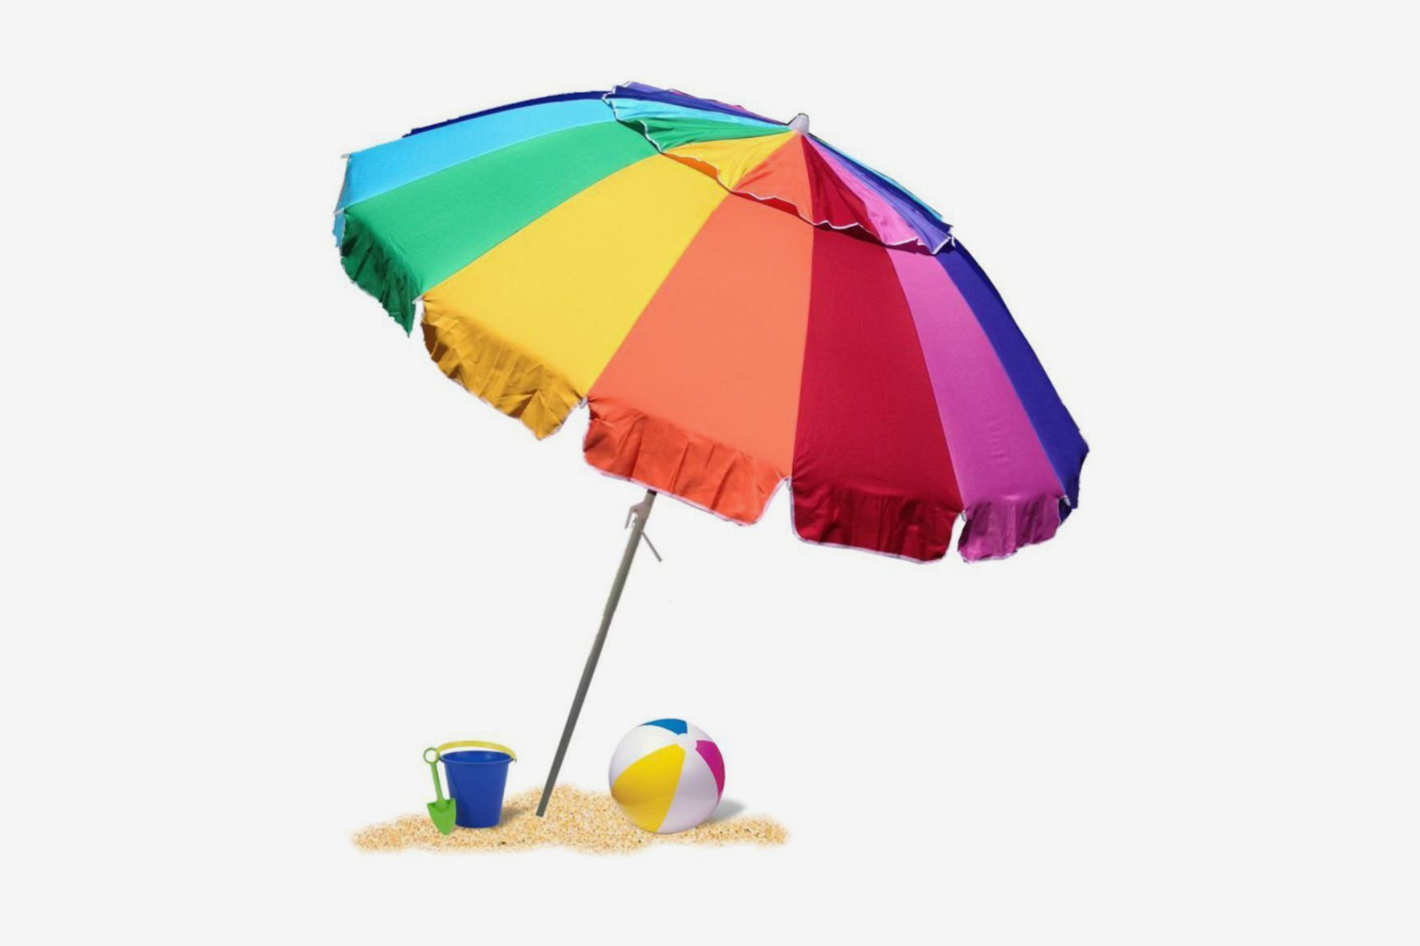 EasyGo 8 Foot Heavy-Duty High Wind Beach Umbrella